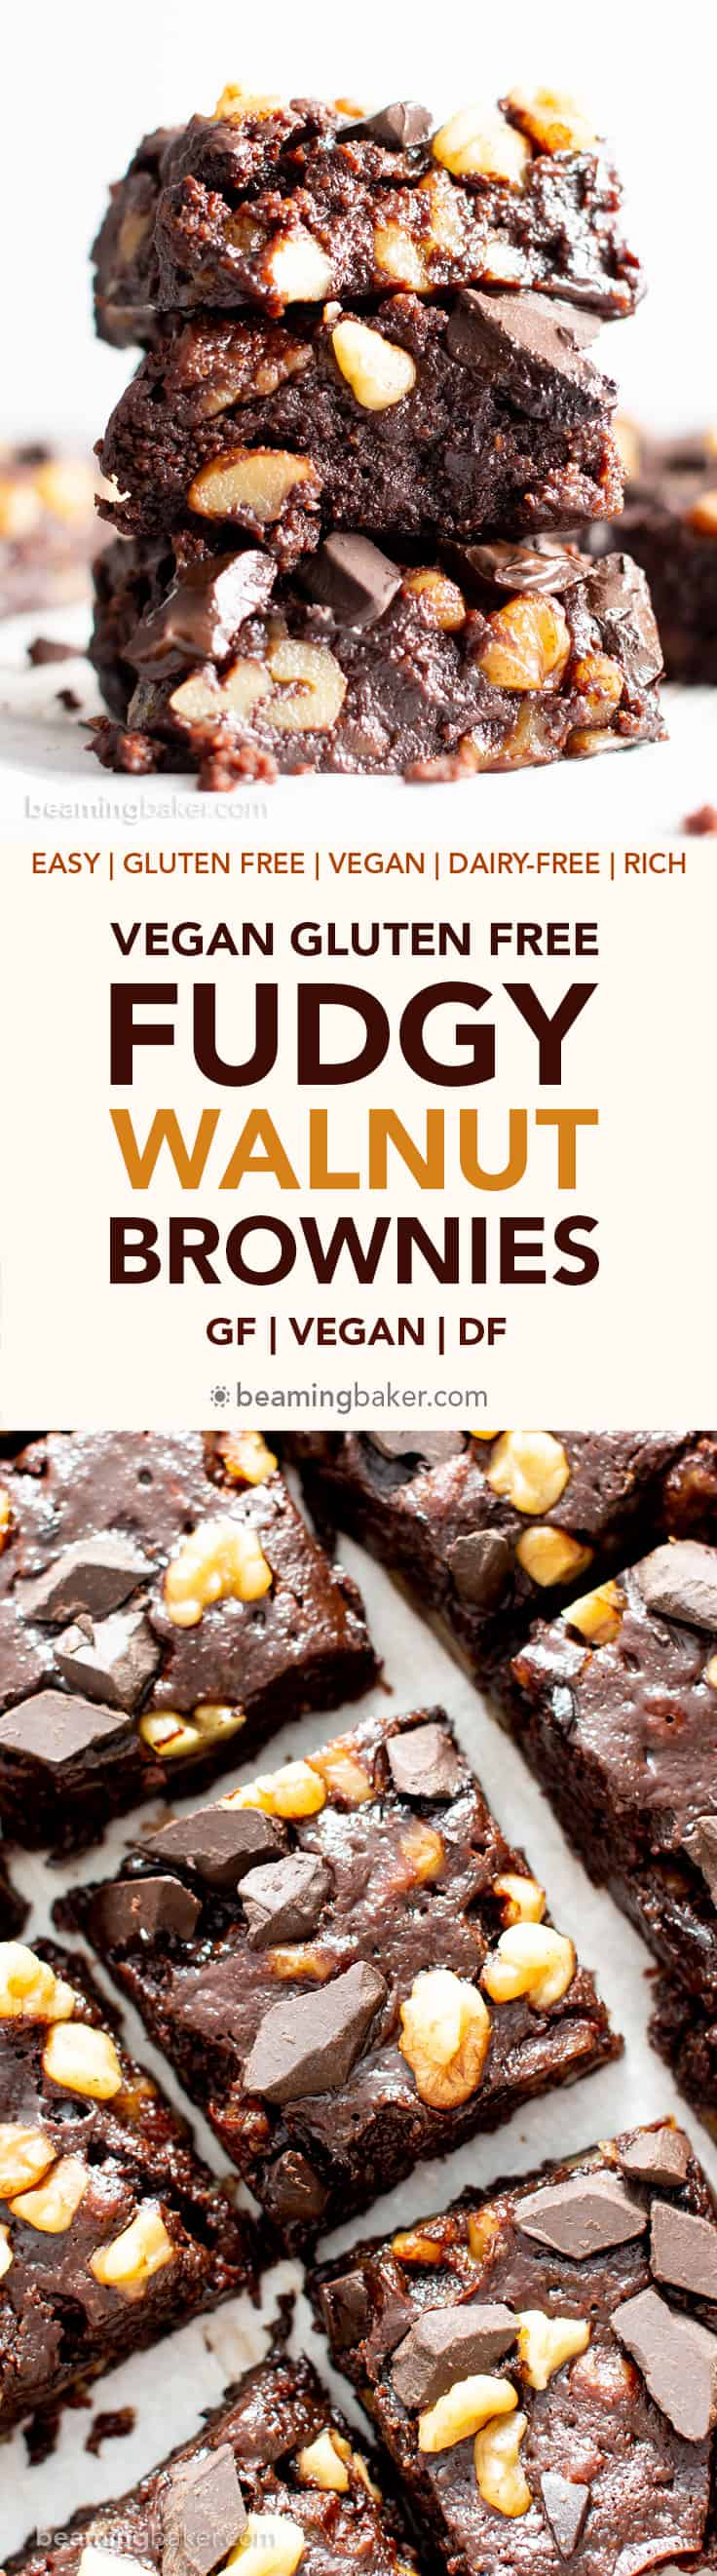 Vegan Gluten Free Fudgy Walnut Brownies Recipe (V, GF): a 1-bowl recipe for super fudgy, rich, dark brownies packed with walnuts and chocolate chunks. Made with healthy, whole ingredients. #Vegan #GlutenFree #GlutenFreeVegan #Brownies #VeganBrownies #DairyFree #BeamingBaker | Recipe at BeamingBaker.com